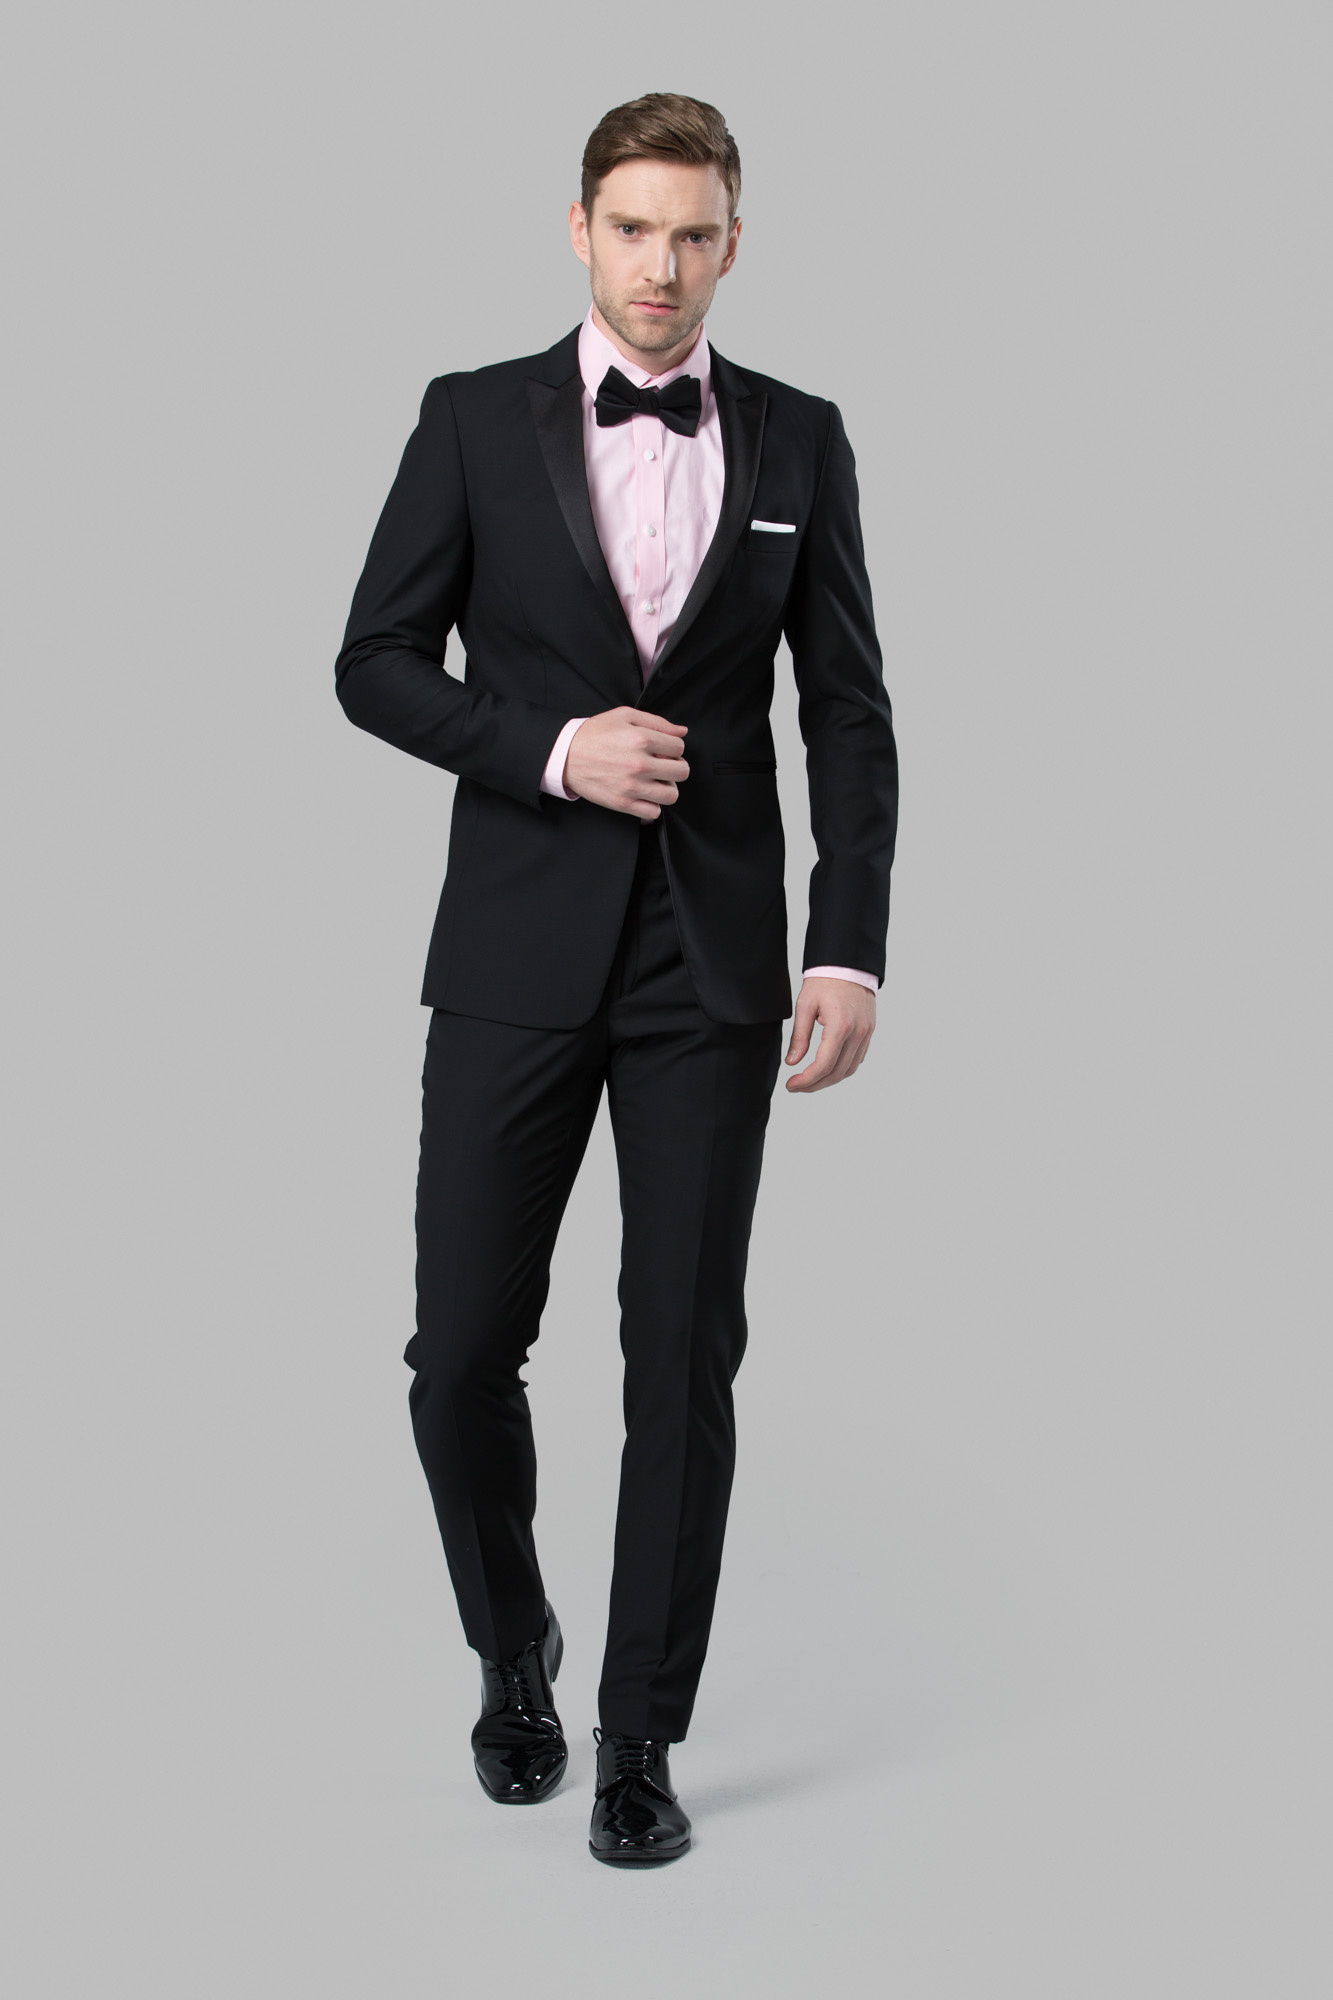 Ralph Lauren Tuxedo Rental | Custom Ralph Lauren Mens Suits